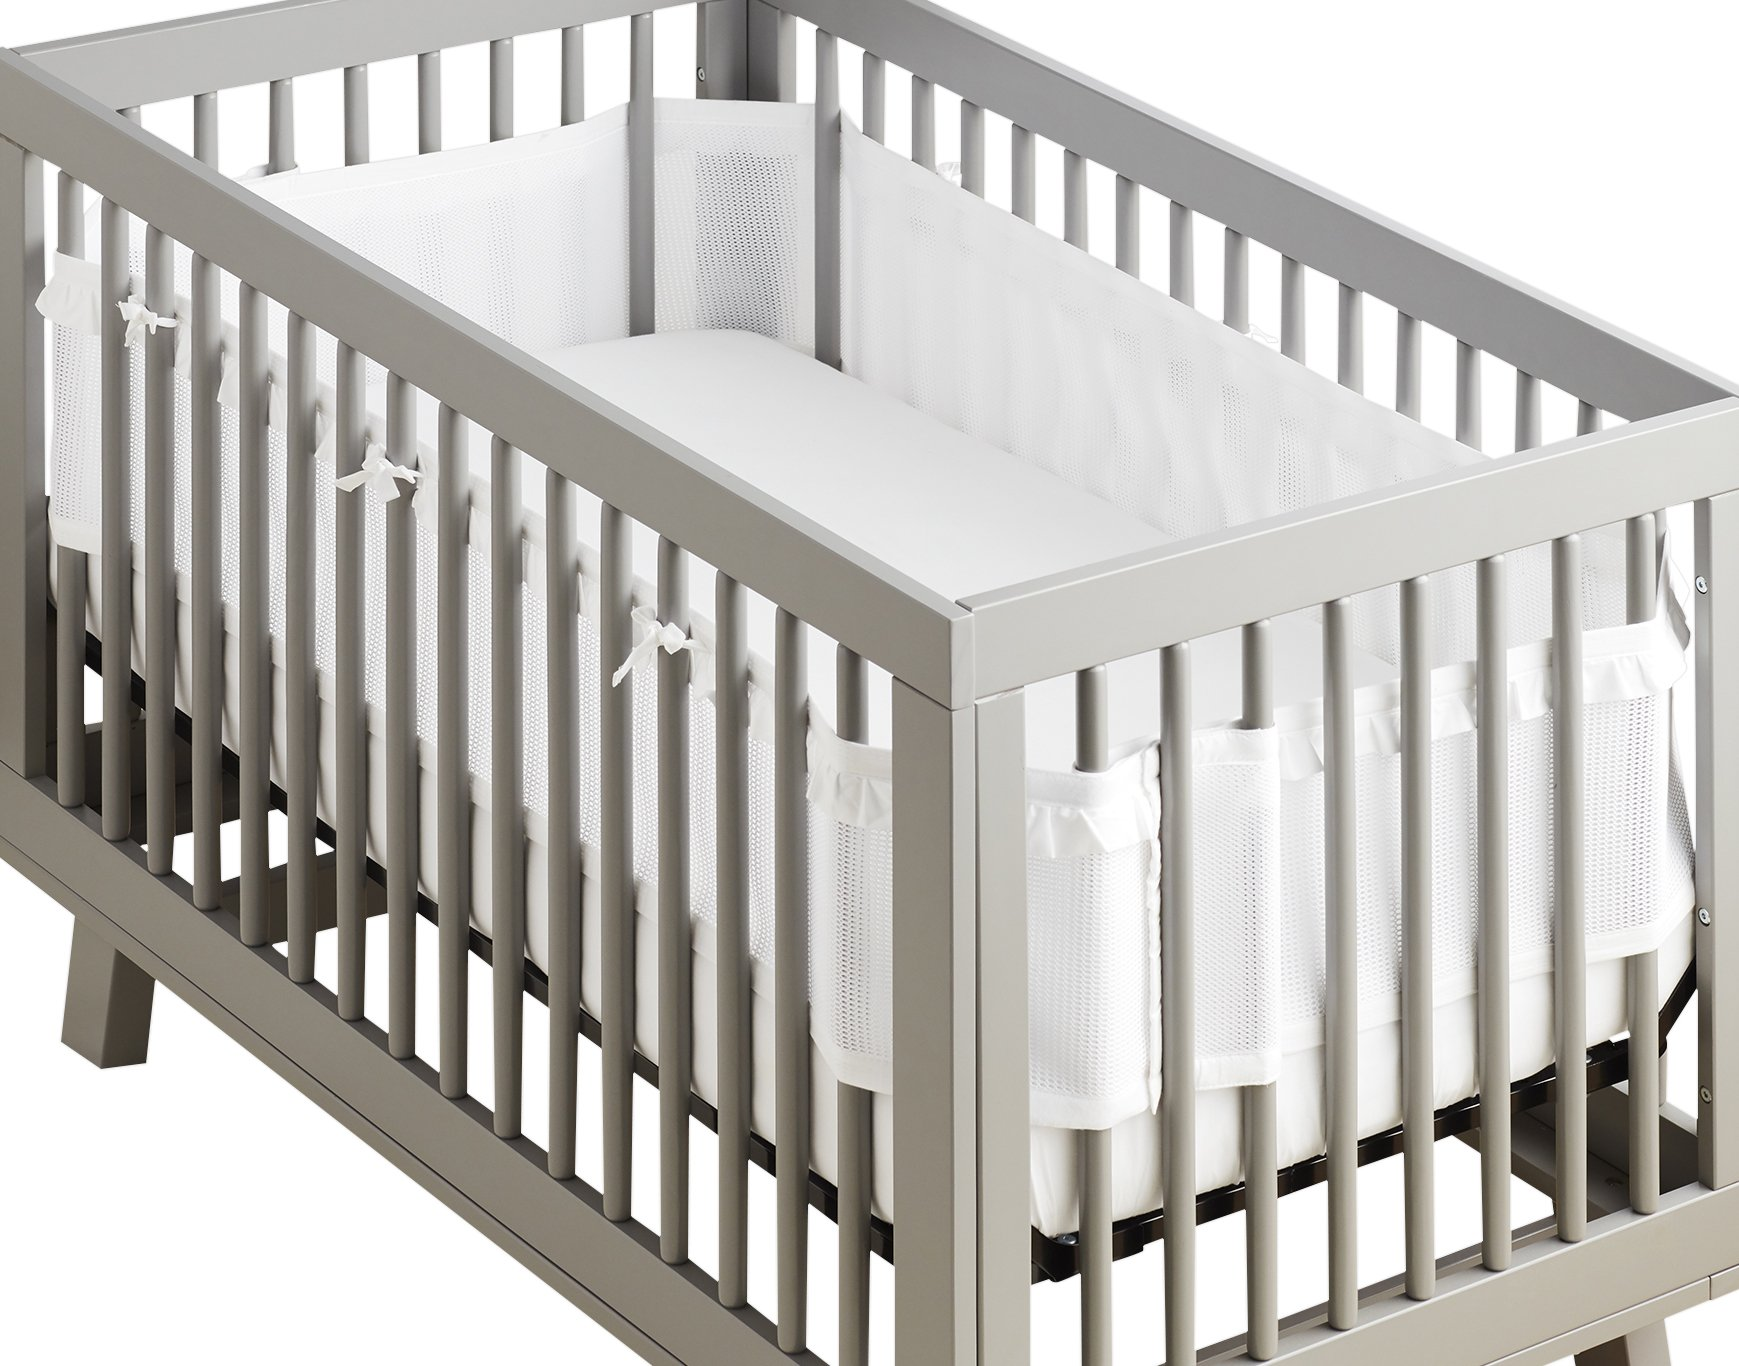 BreathableBaby | Deluxe Breathable Mesh Crib Liner | Doctor Endorsed | Helps Prevent Arms and Legs from Getting Stuck Between Crib Slats | Independently Tested for Safety | White Ruffle